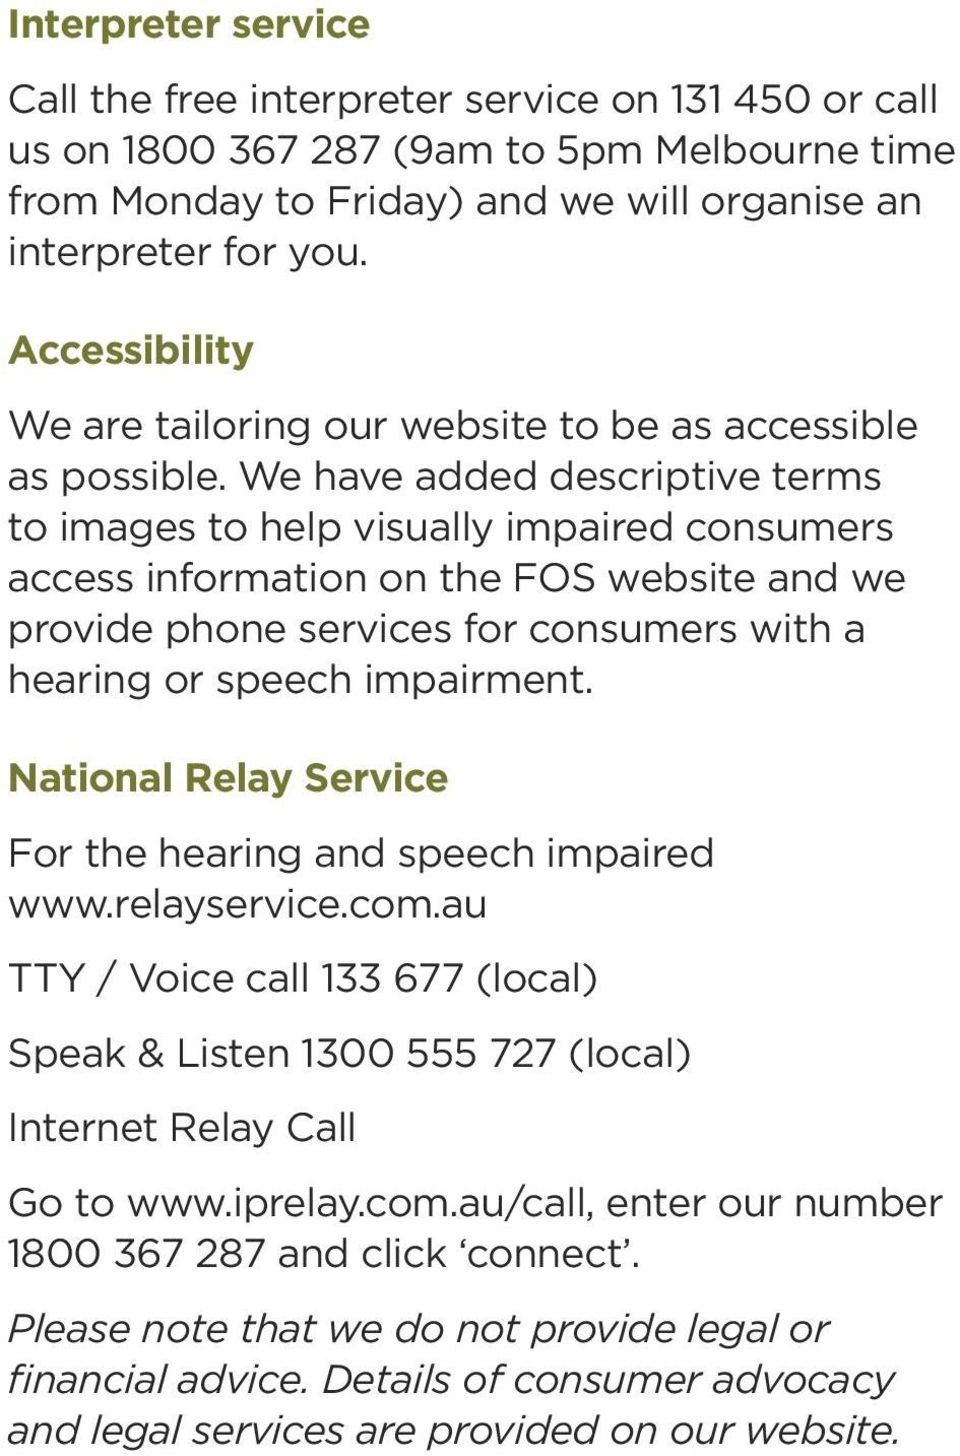 We have added descriptive terms to images to help visually impaired consumers access information on the FOS website and we provide phone services for consumers with a hearing or speech impairment.